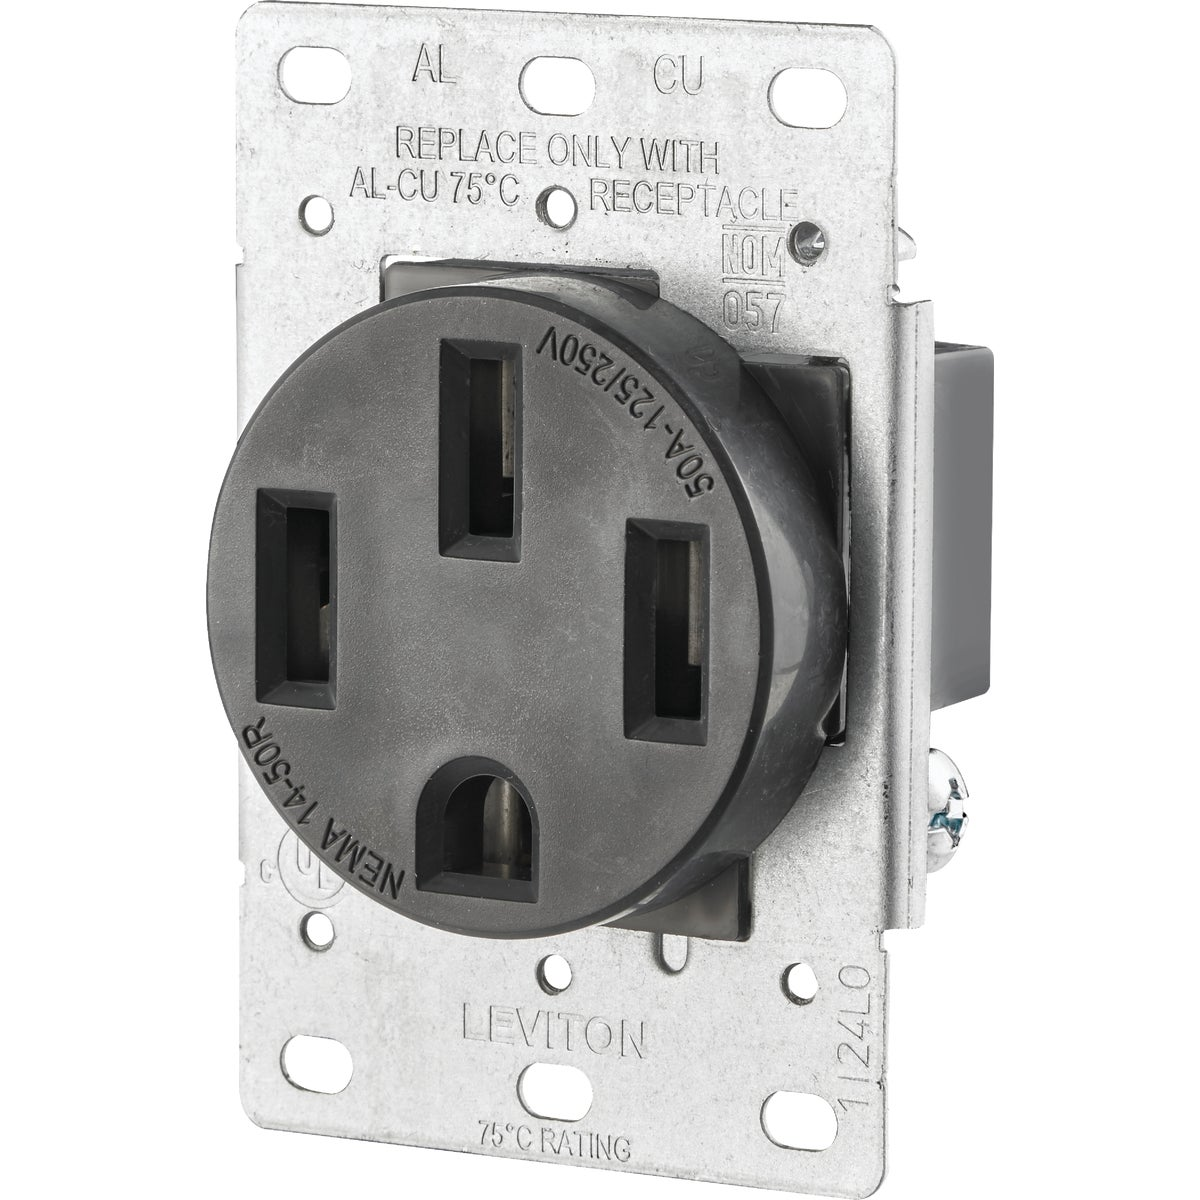 FLUSH RANGE OUTLET